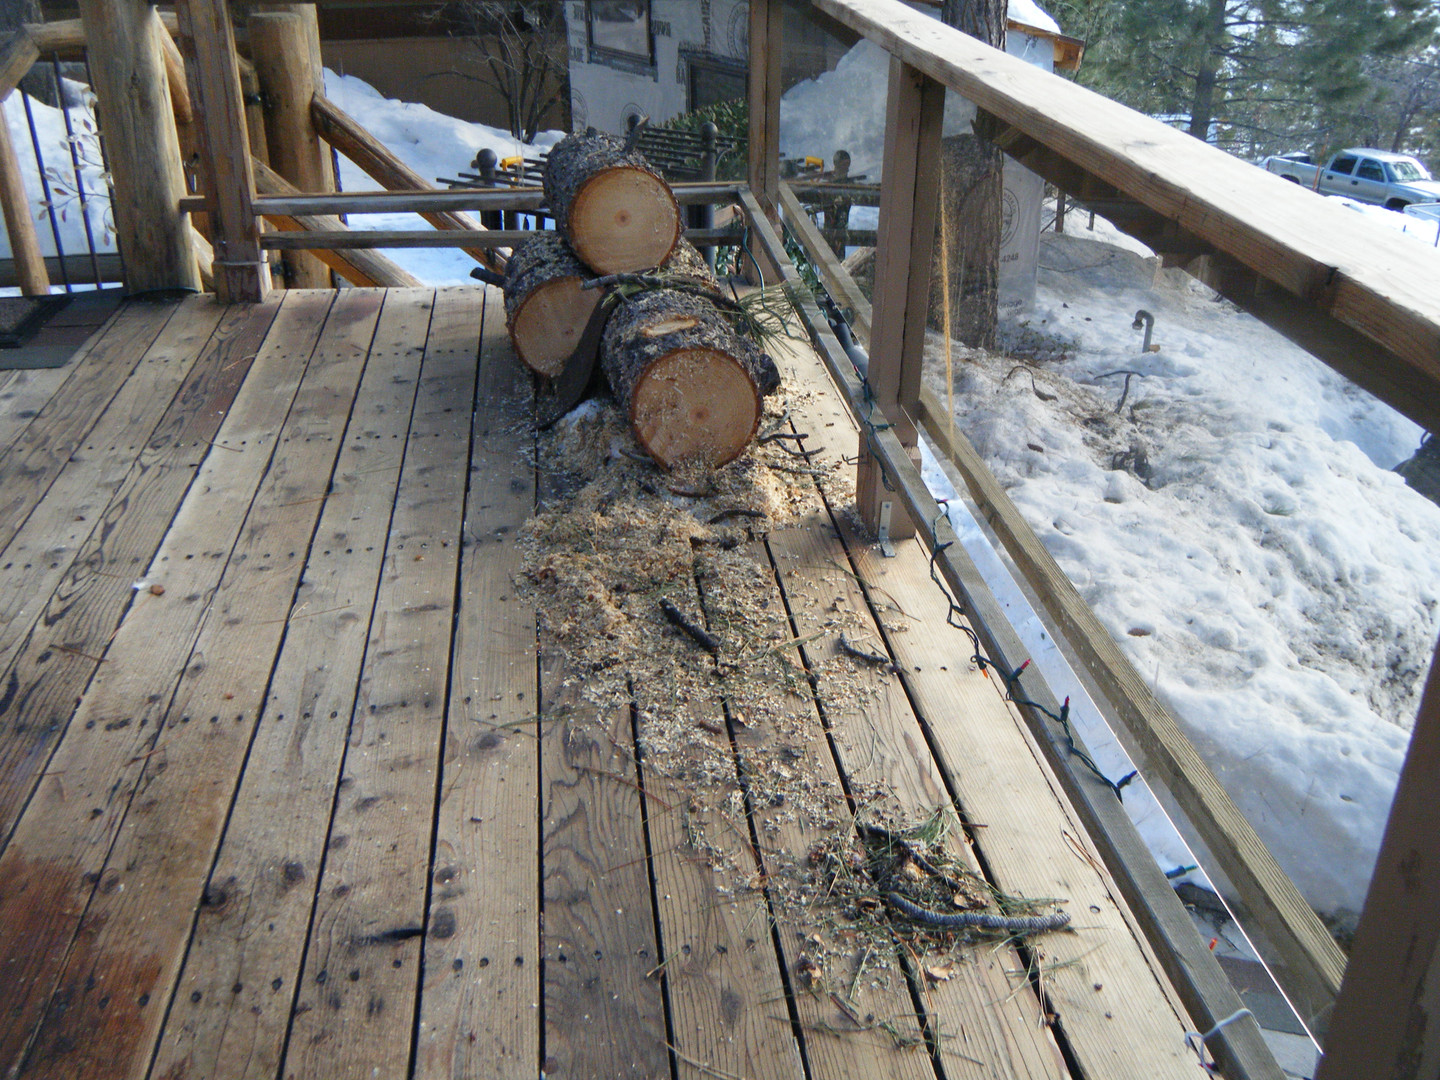 Tree Rounds from Limb on Cabin - cut up March 2017